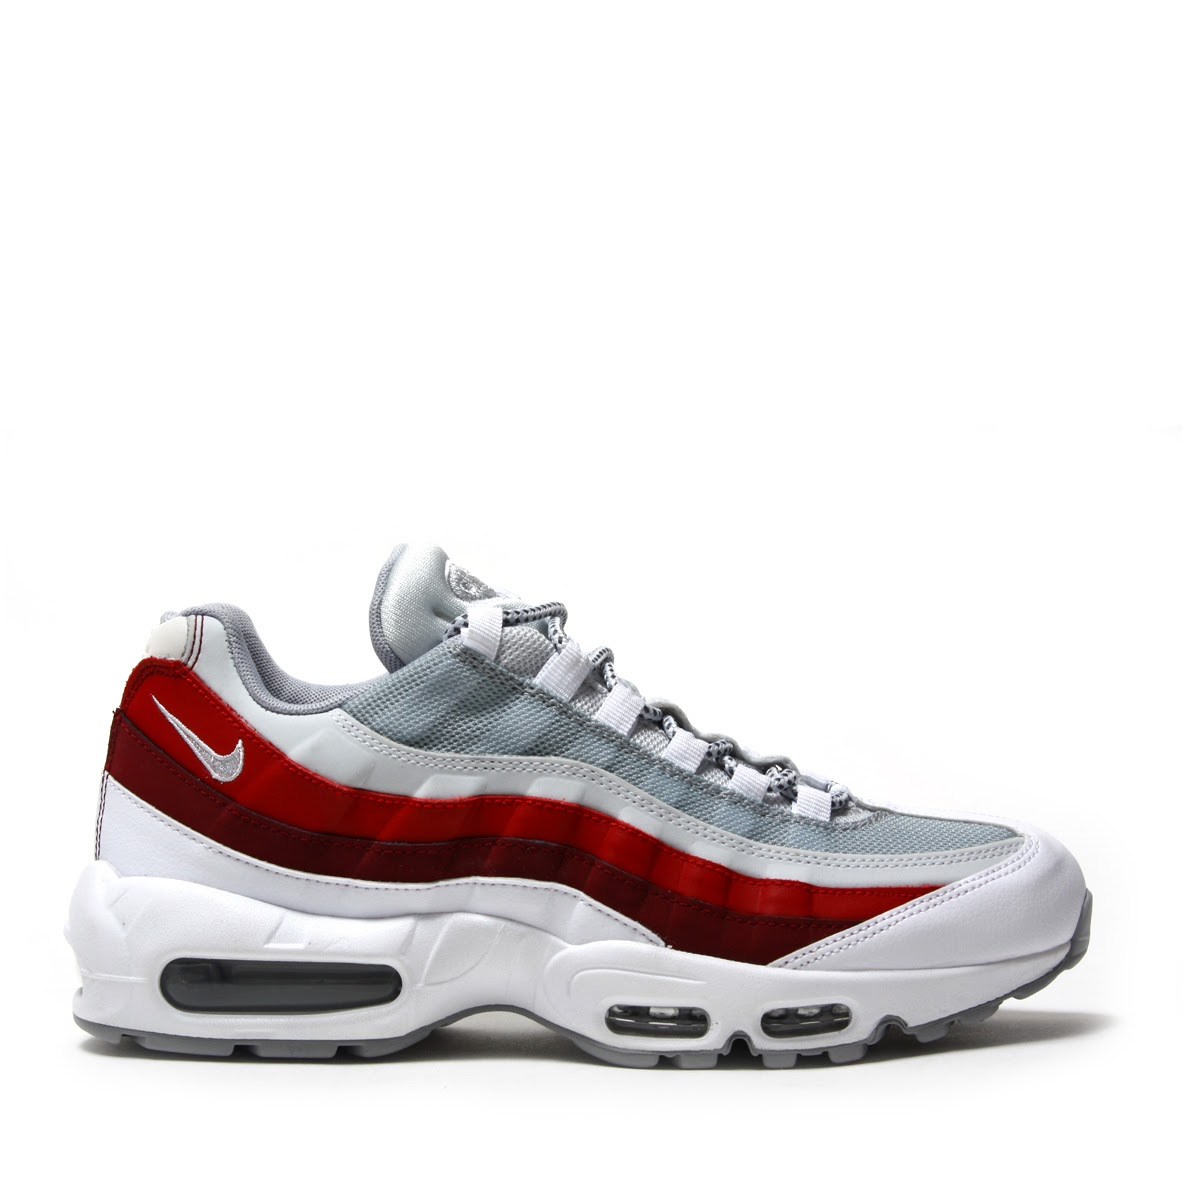 check out 41b3c f4997 ... NIKE AIR MAX 95 ESSENTIAL (Kie Ney AMAX 95 essential) WHITE WOLF GREY  ...